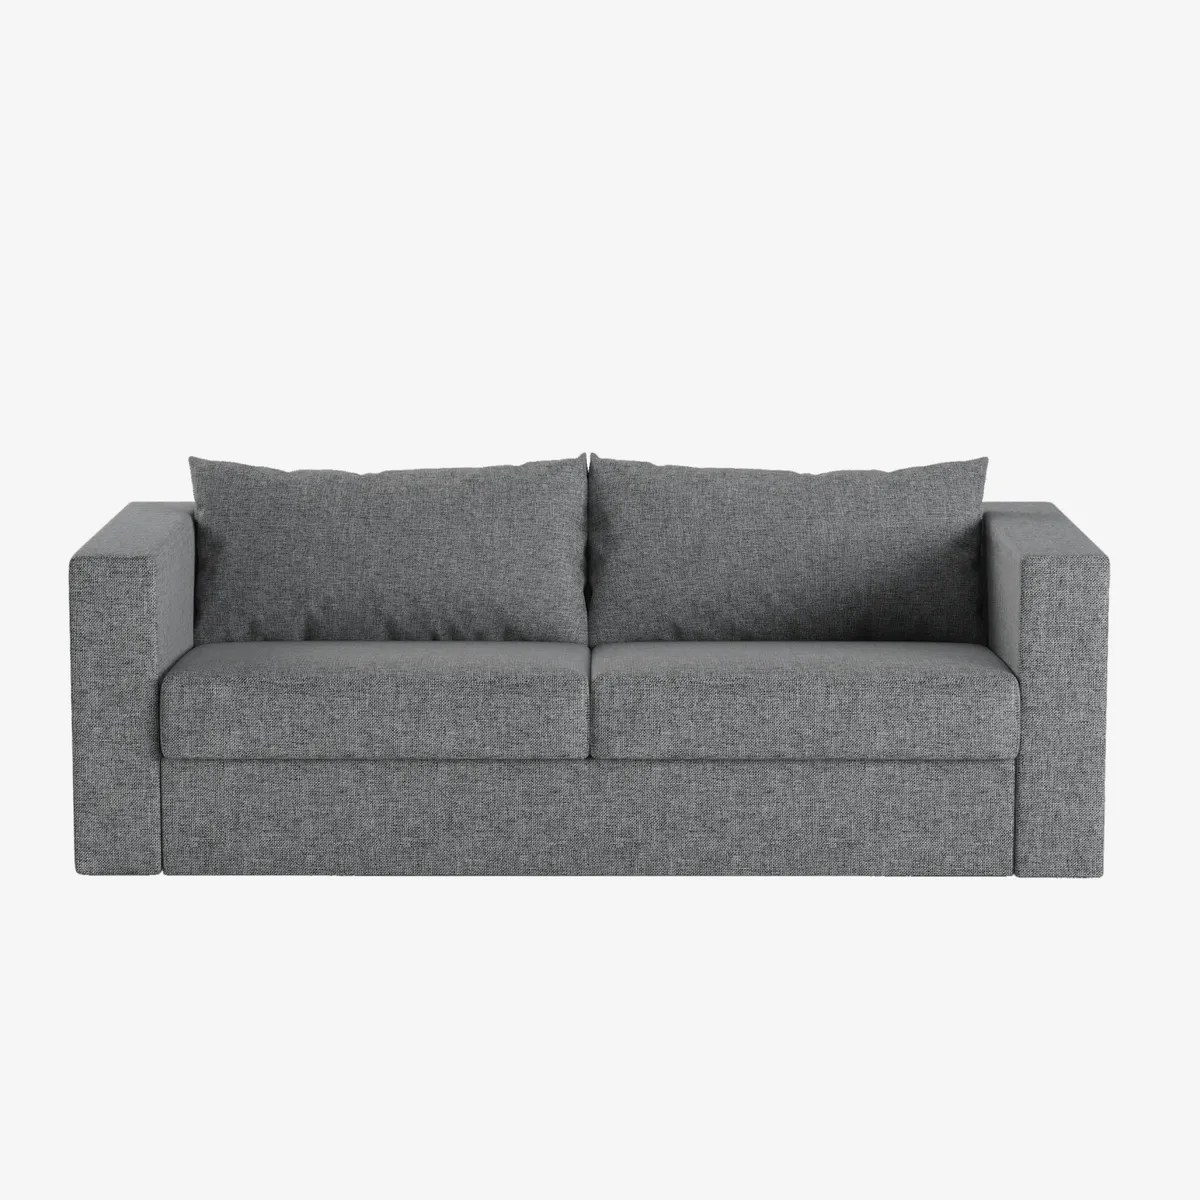 10 Best Flat Pack Sofas Campaign Joybird Burrow 2020 The Strategist New York Magazine